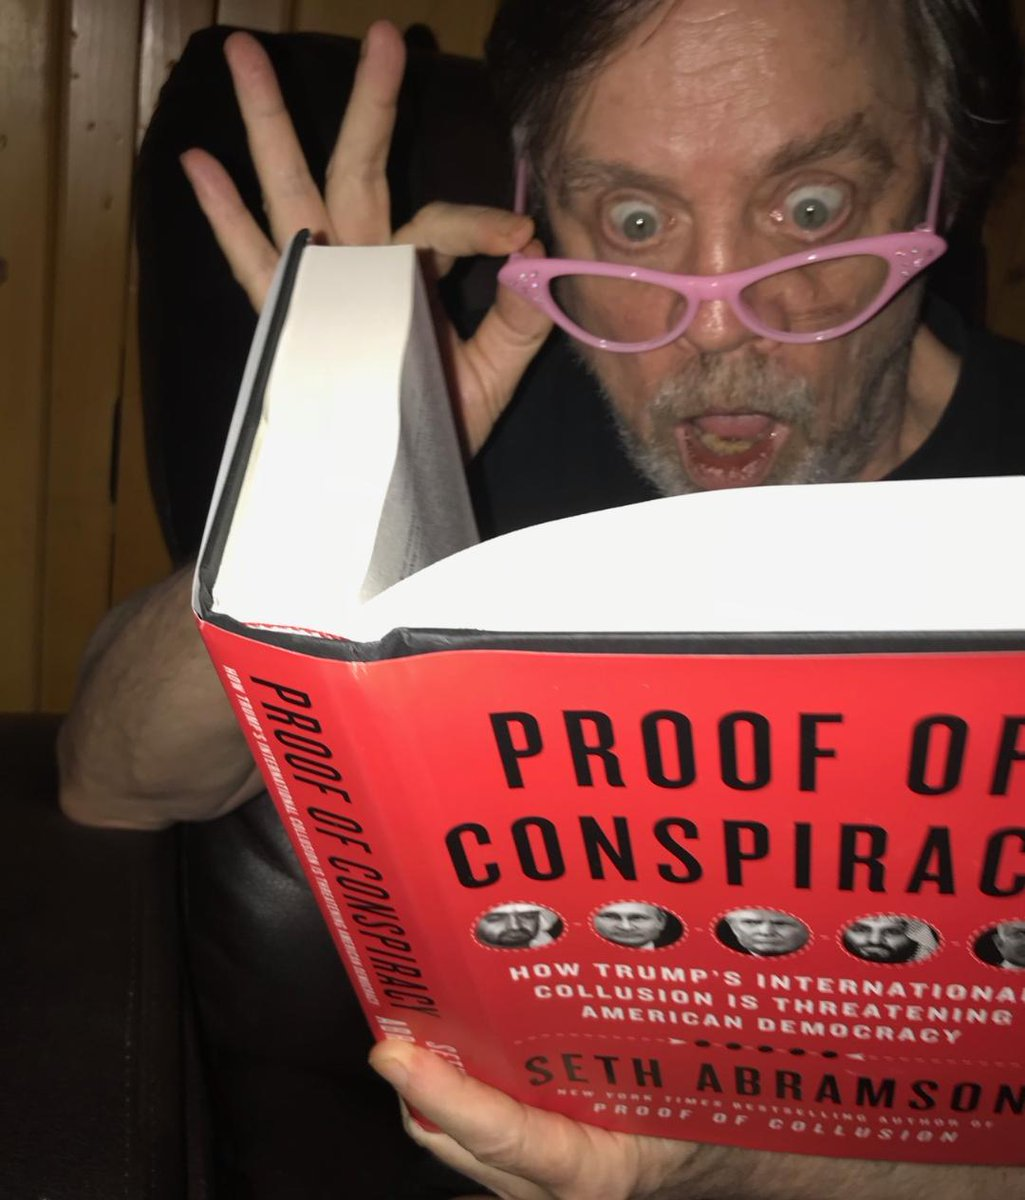 In PROOF OF CONSPIRACY @sethabramson expertly details the Russian attack on our 2016 election. It was unprecedented, thorough & most importantly-ONGOING as they actively attempt to re-elect Individual 1 in 2020, who welcomes their support. (pink specs courtesy @RandyRainbow)